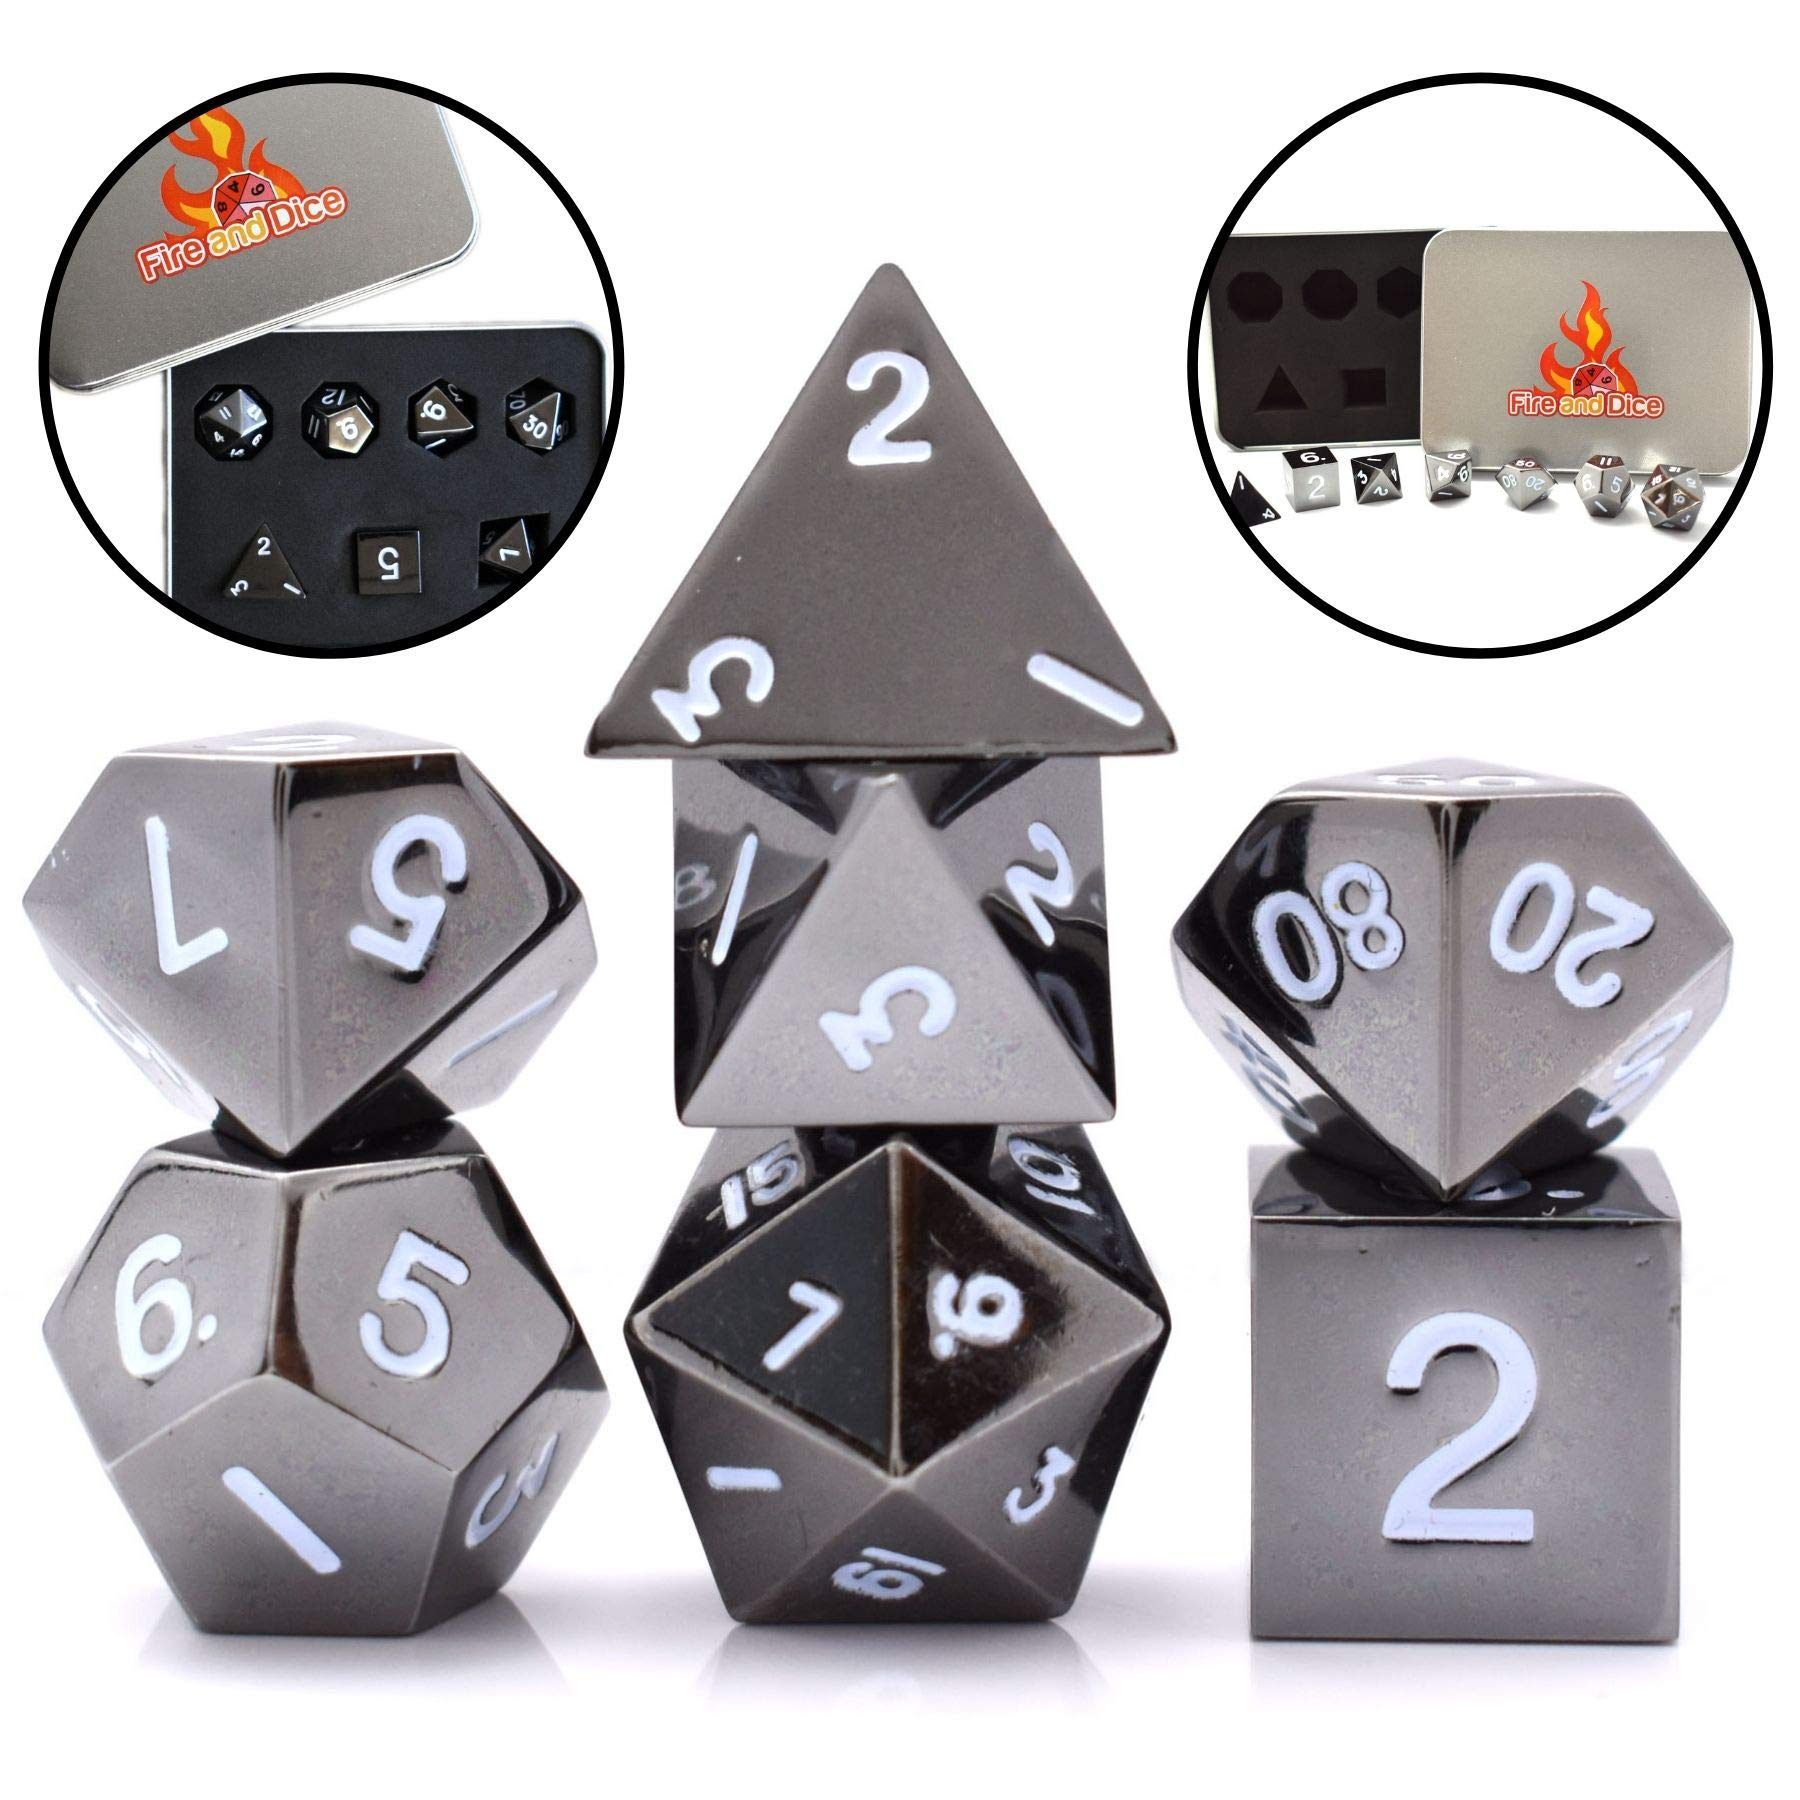 Metal Dice Set for Dnd Dice, Rpg Dice, Game Dice. Polyhedral Dice Set with Metal Case by Fire And Dice